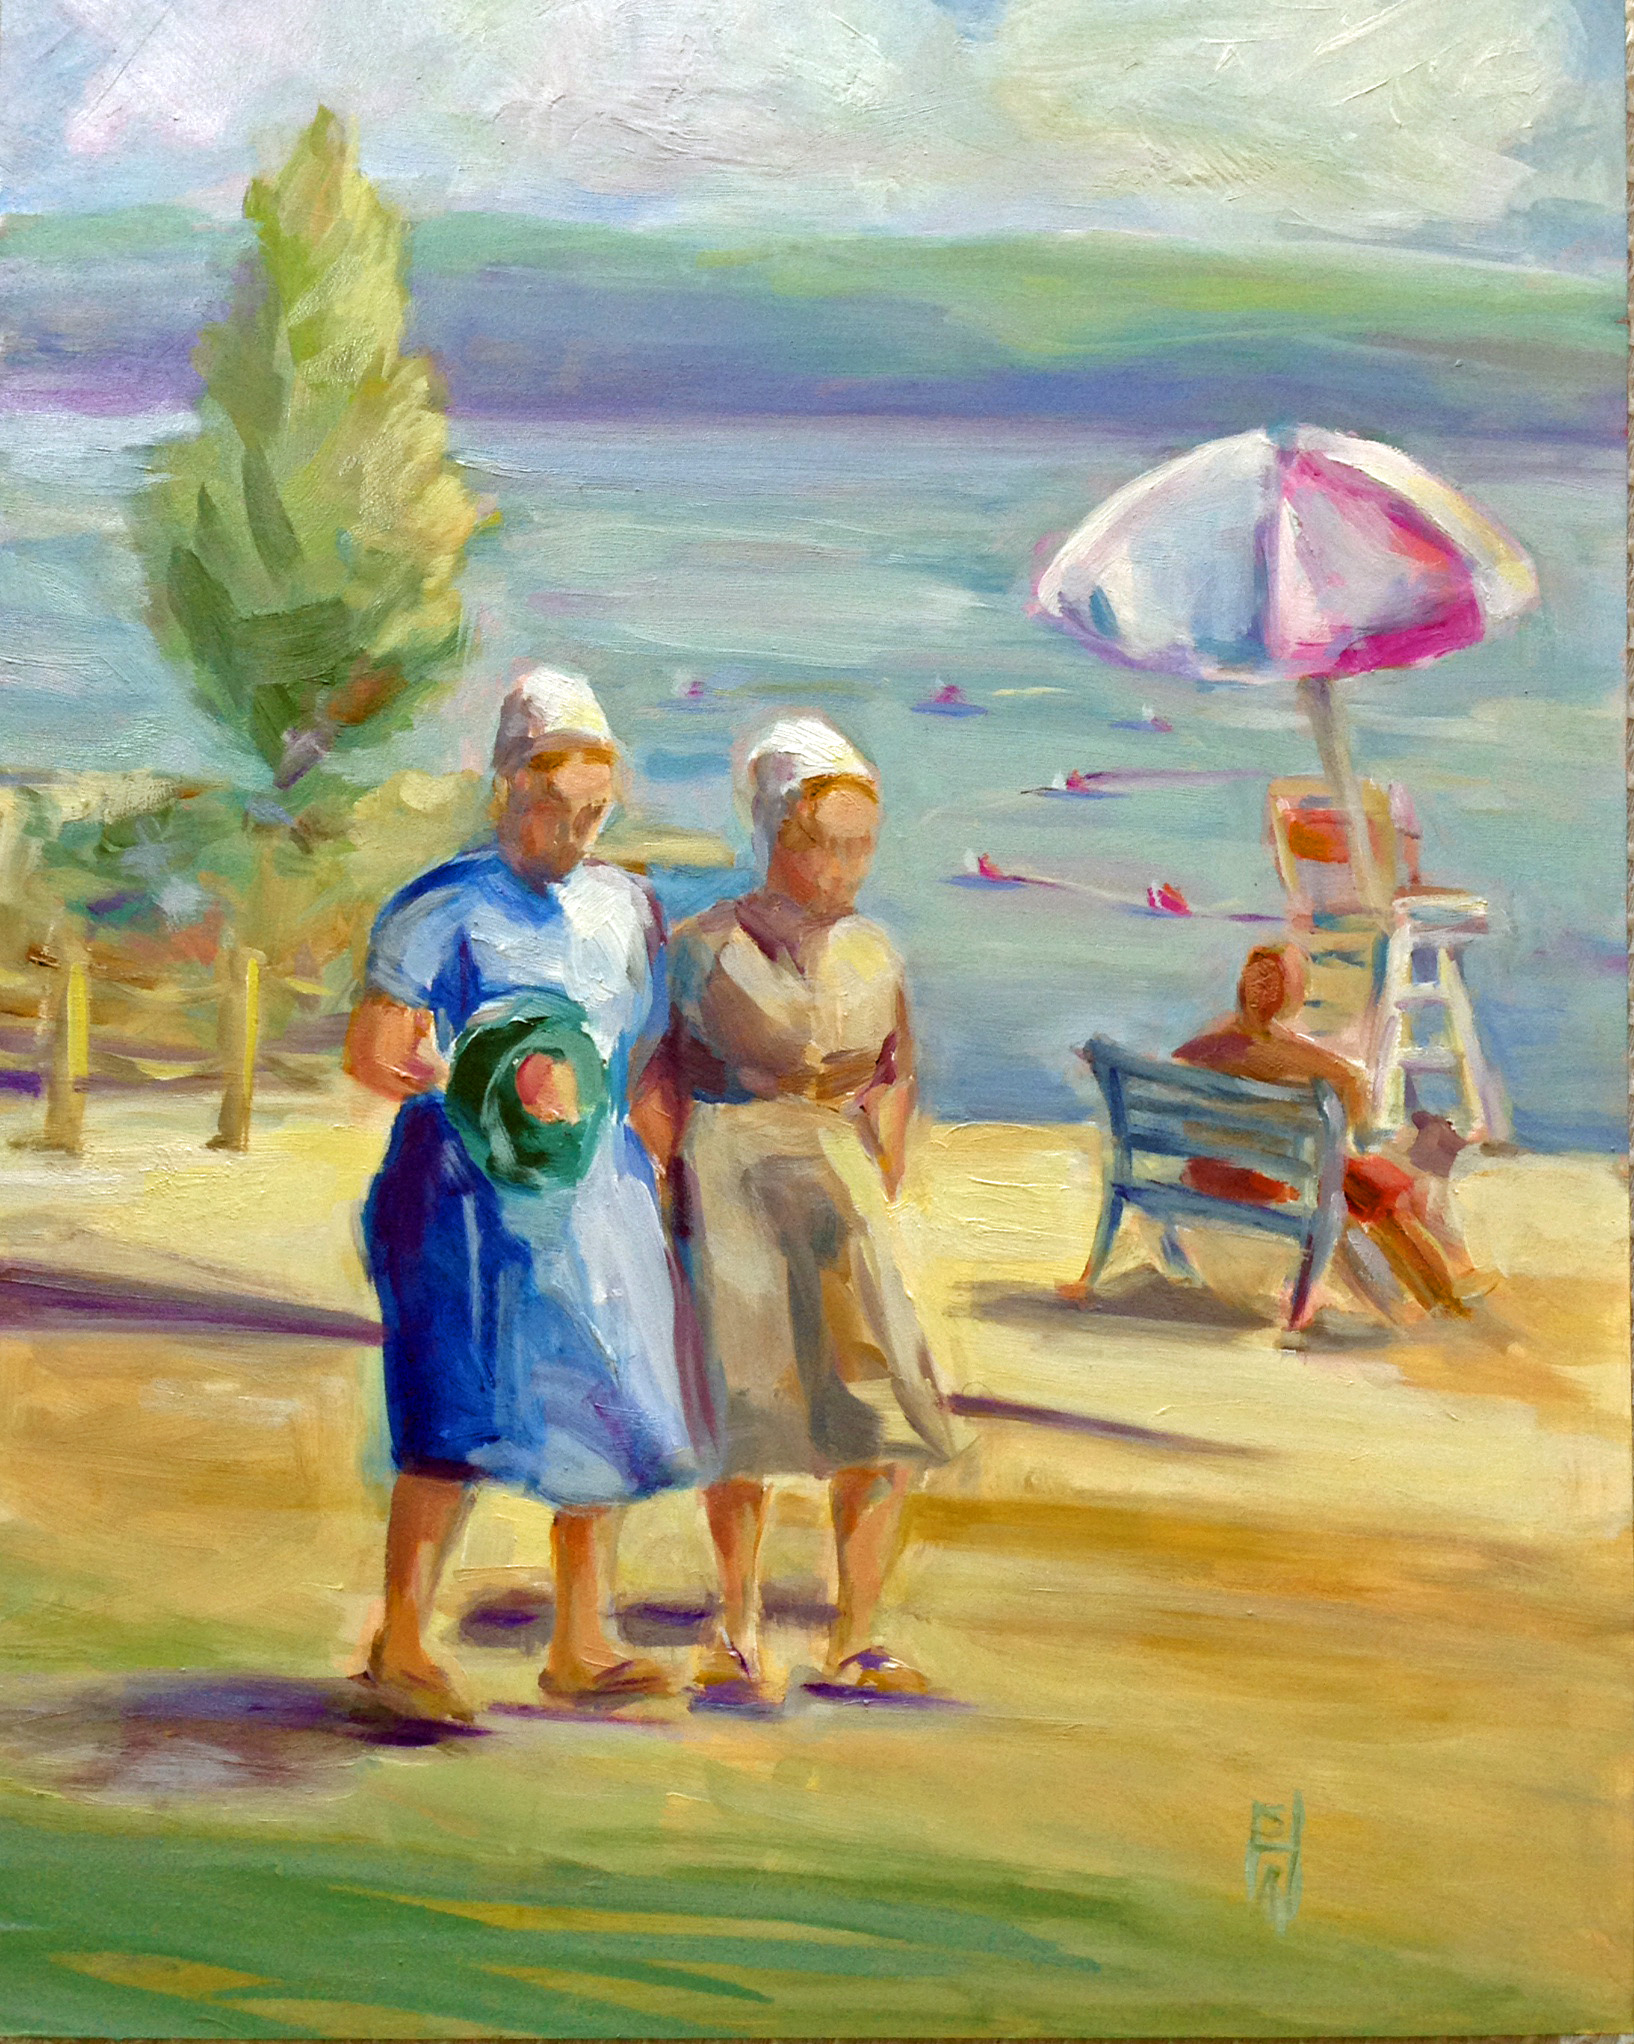 Lunchbreak on Children's Beach  oil on board, 11x14. Private collection